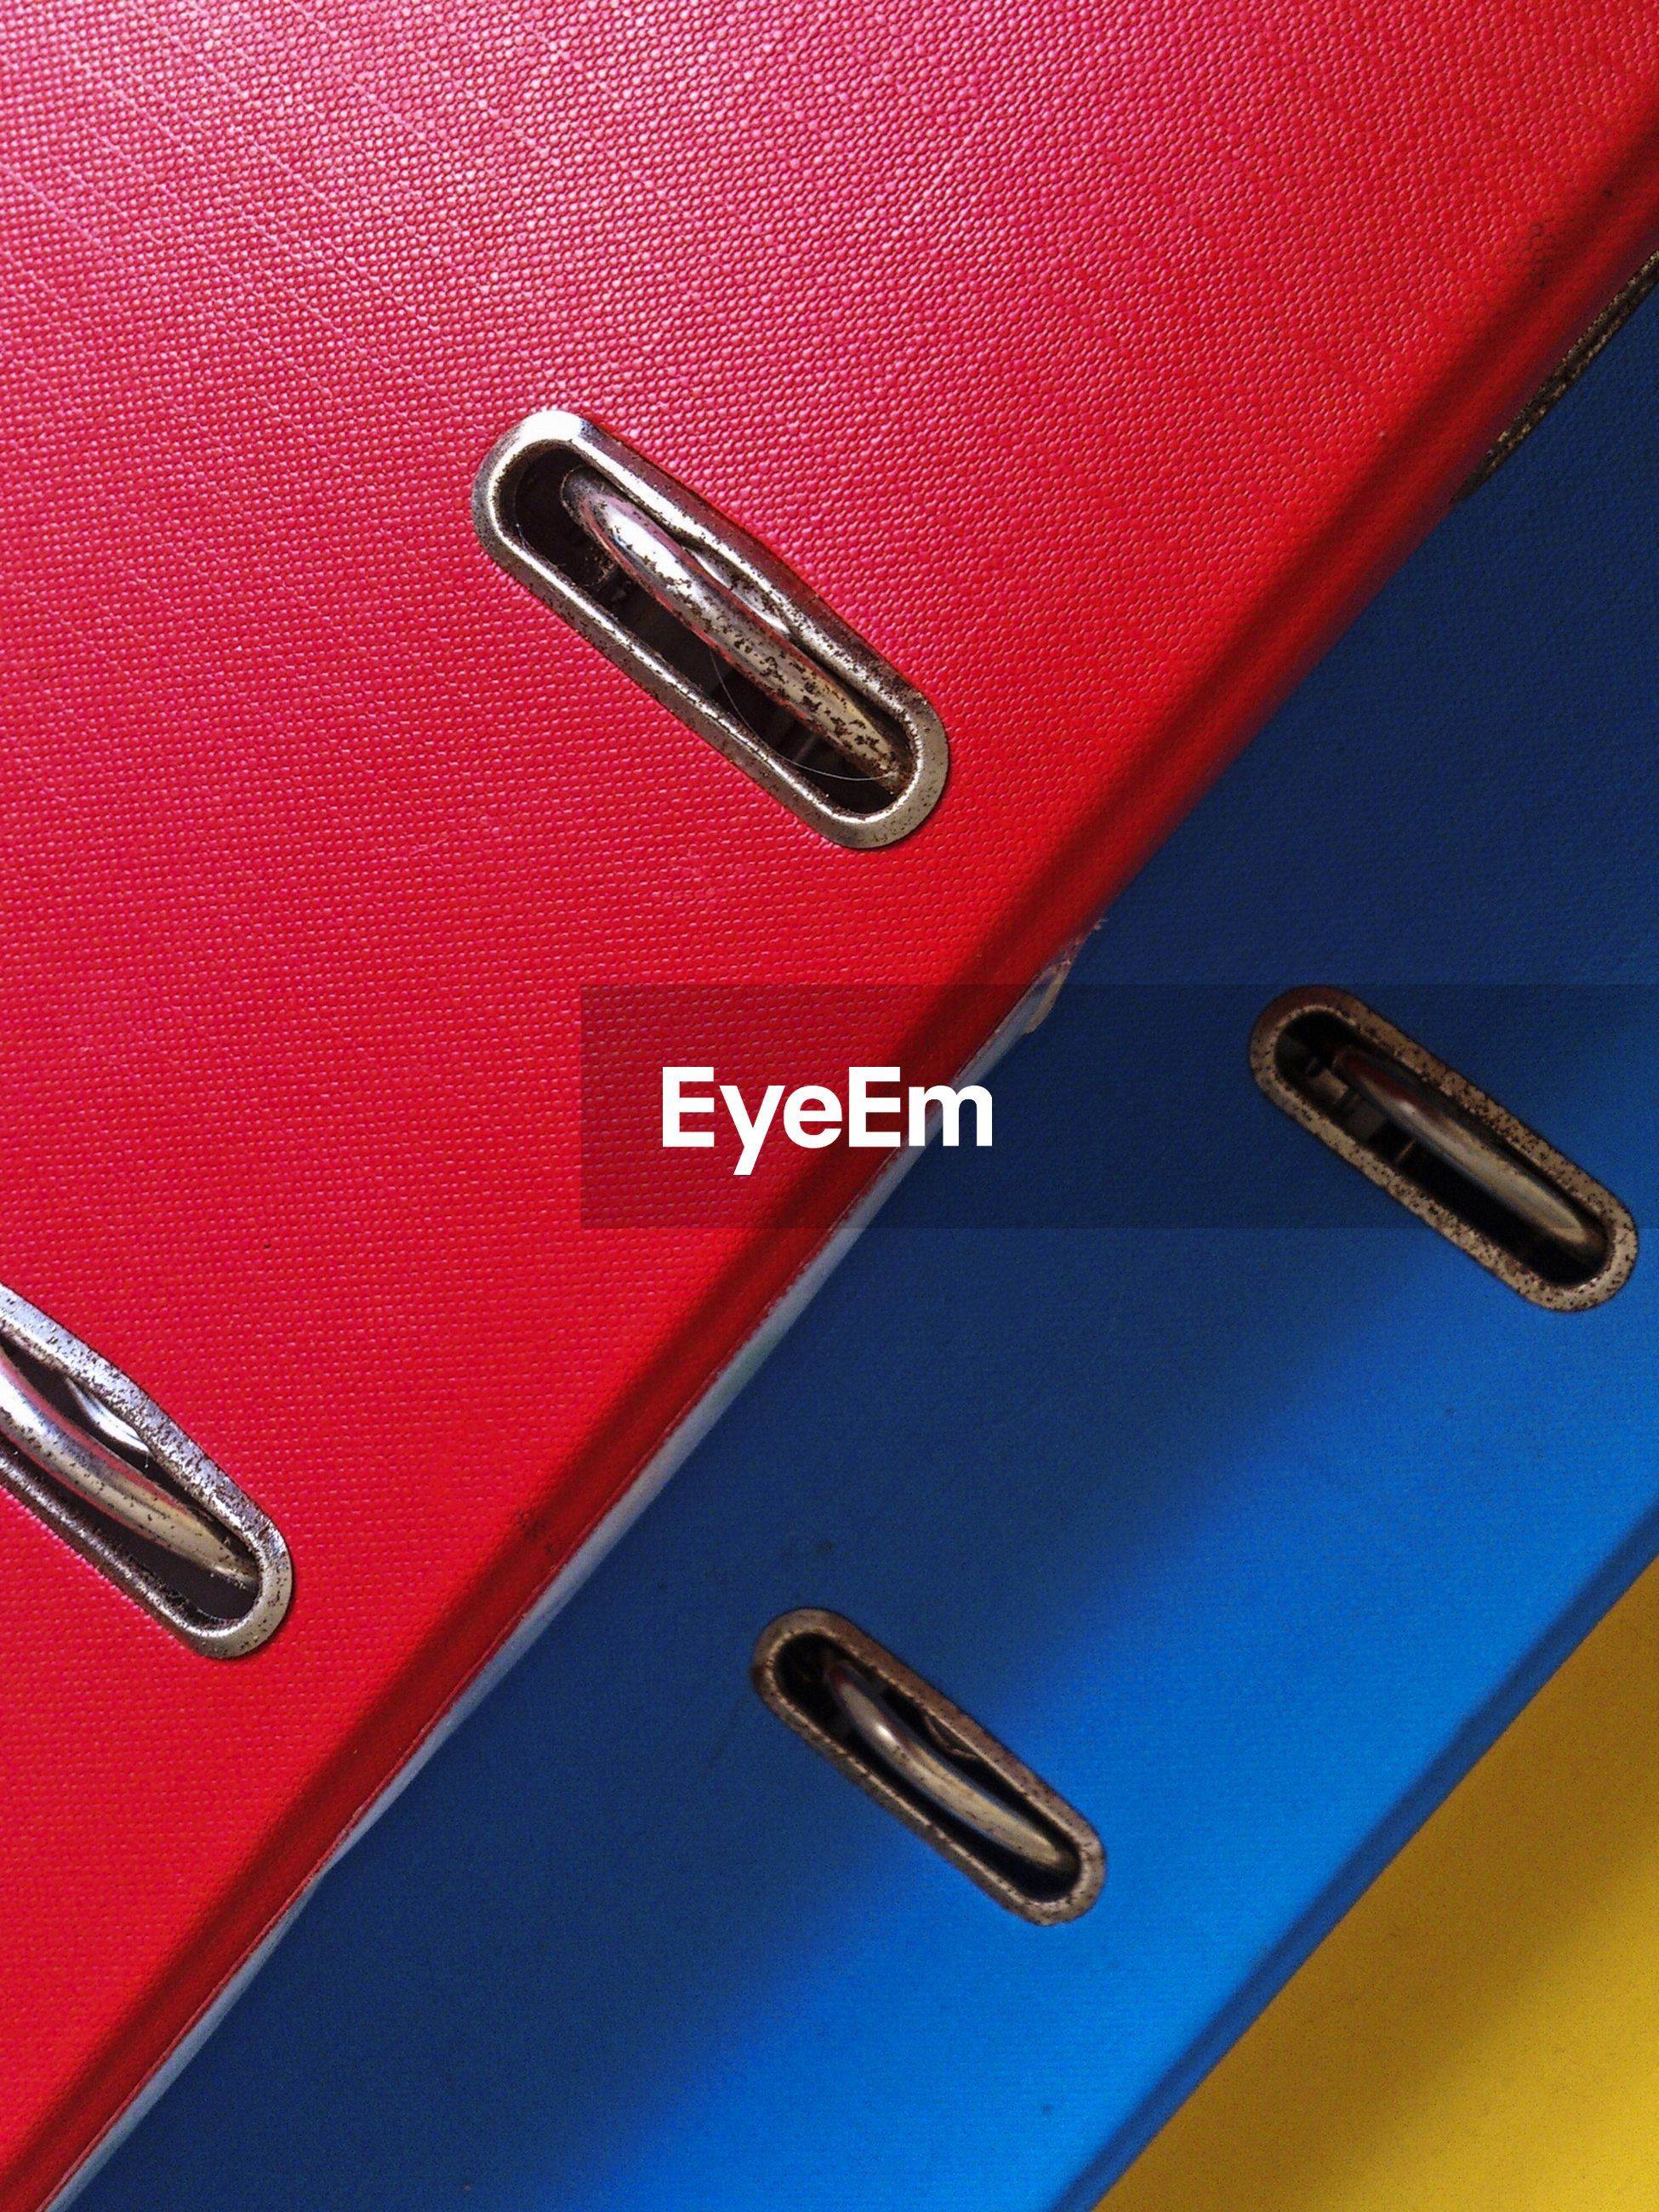 High angle view of red and blue ring binders